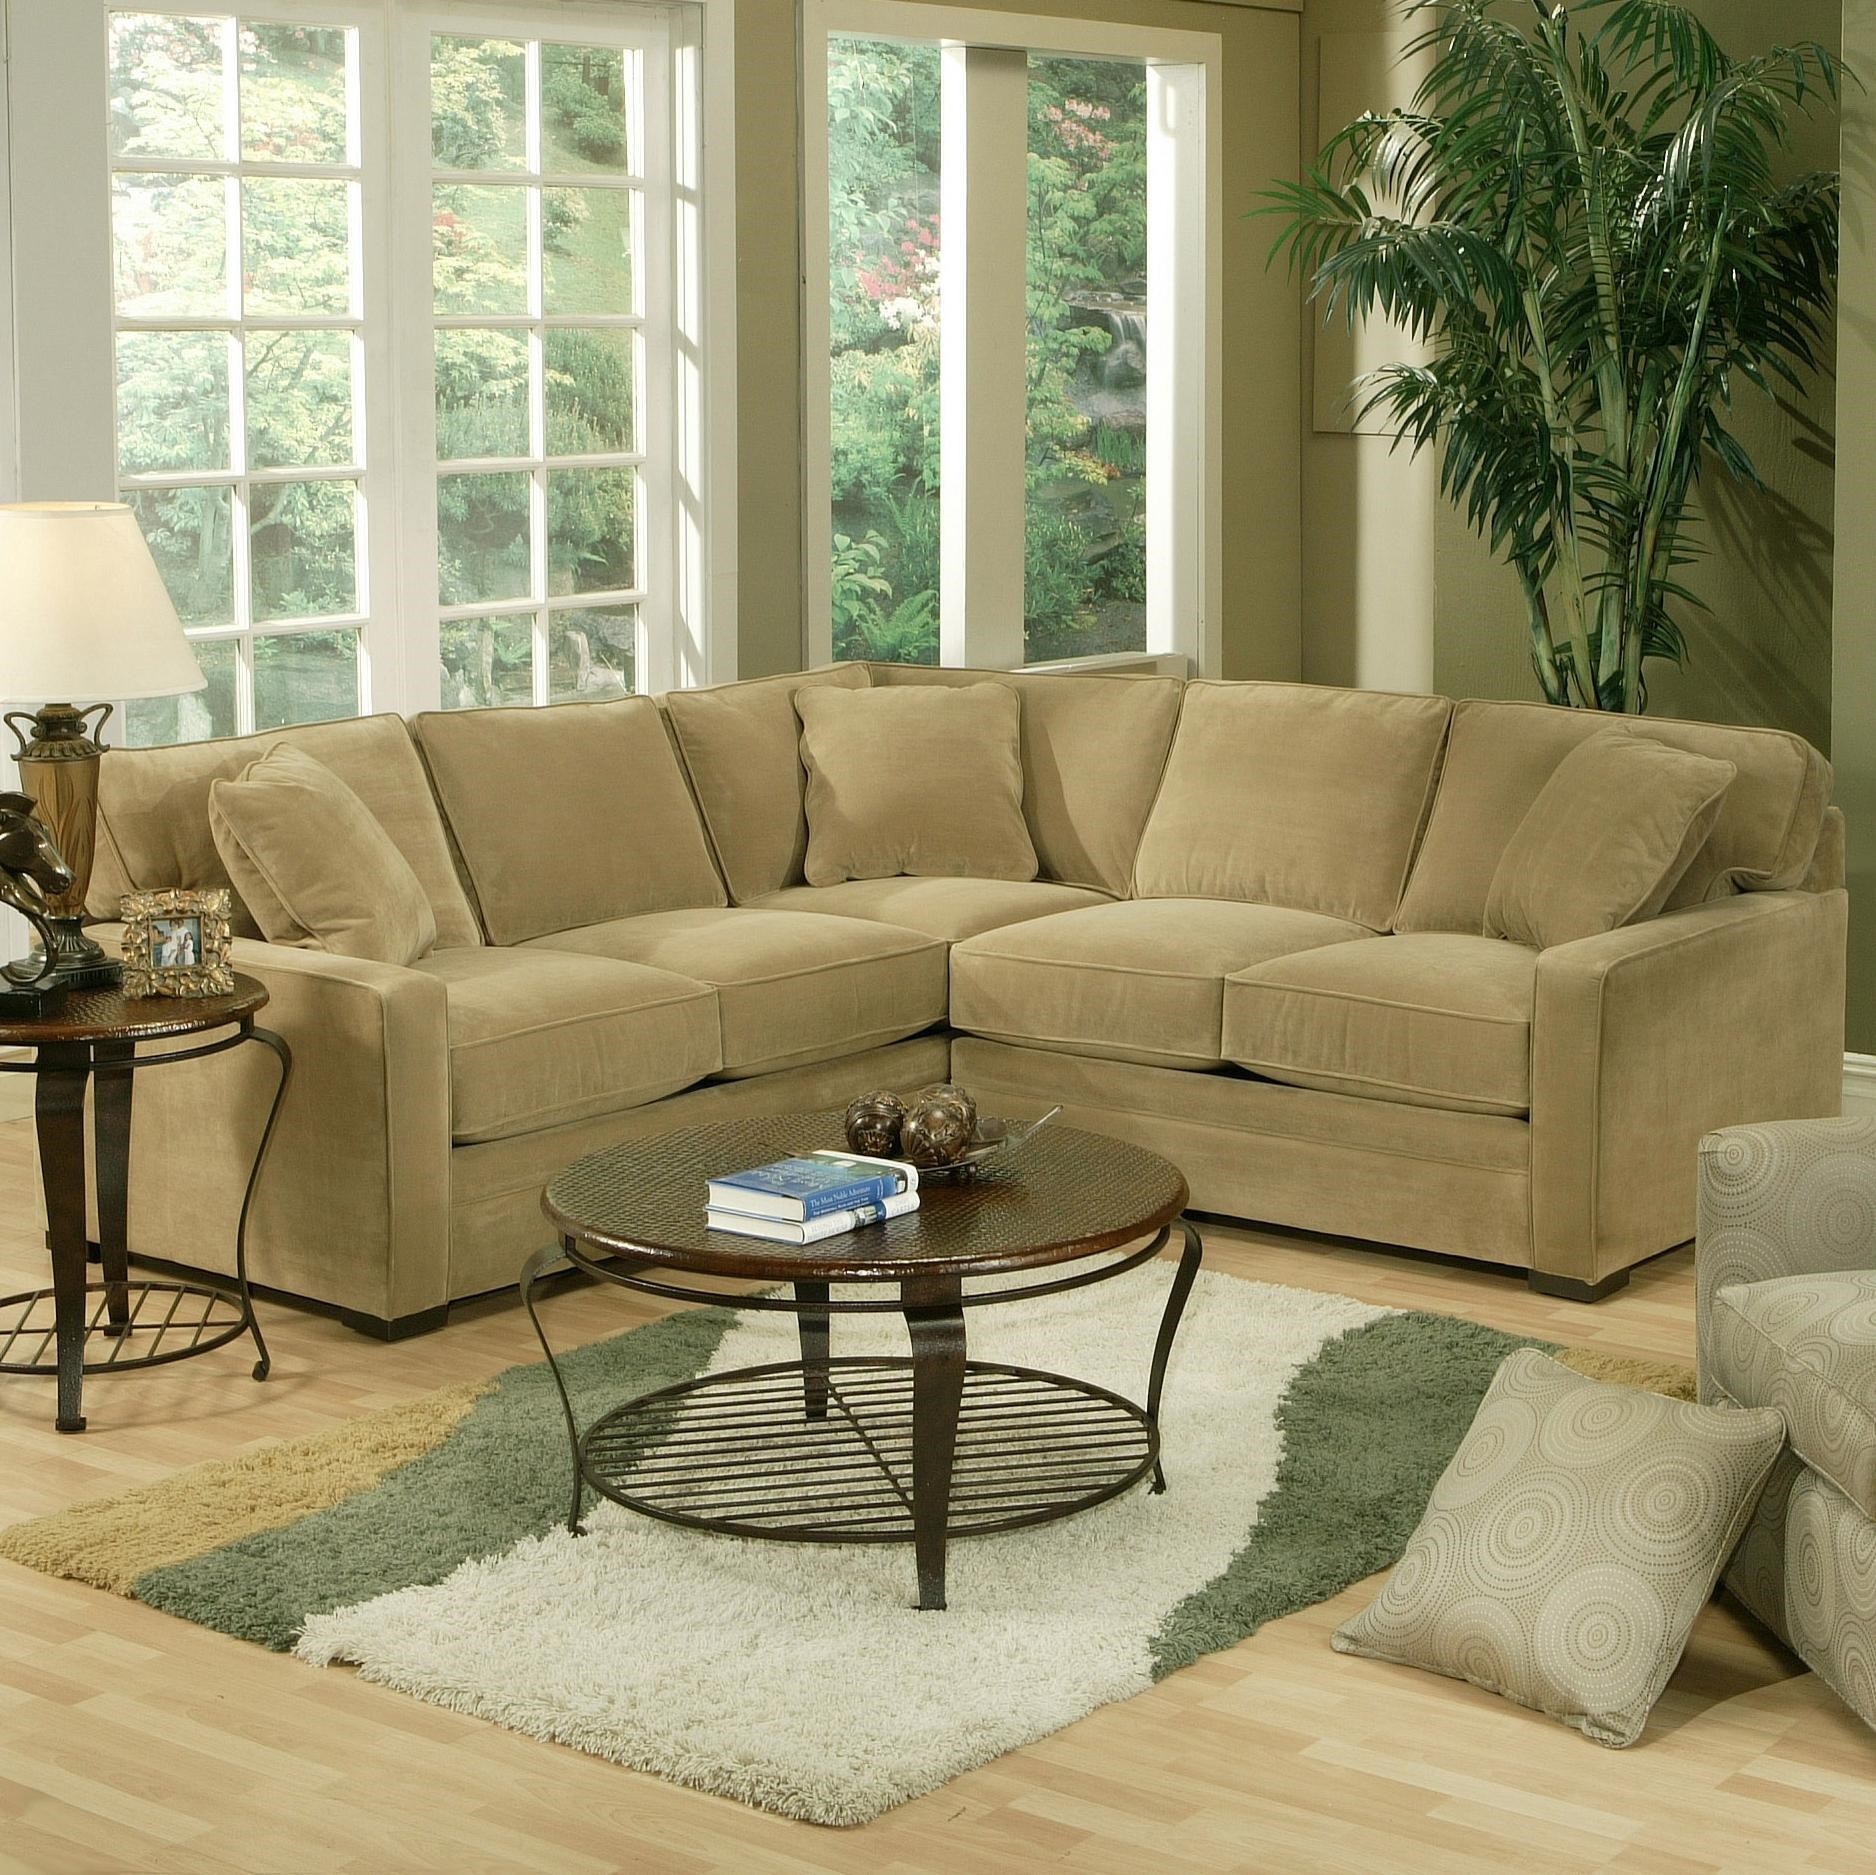 jonathan louis choices juno contemporary sofa with track arms rh olindes com jonathan louis sectional sofa 67 jonathan louis sectional sofa reviews